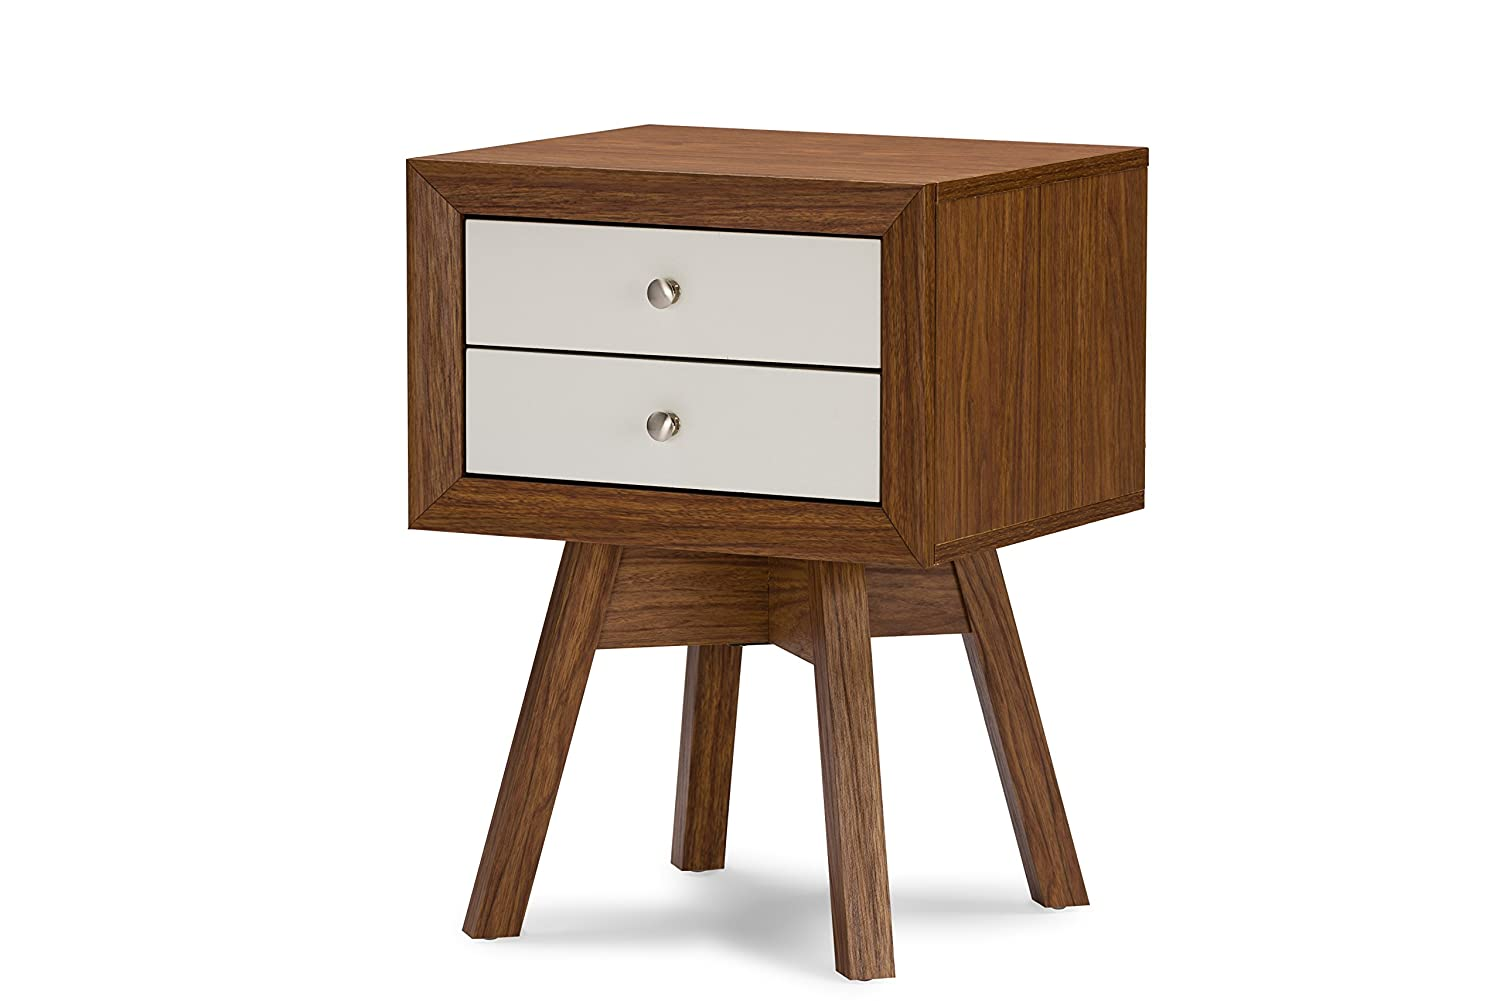 modern accent tables. Amazon.com: Baxton Studio Warwick Two-Tone Modern Accent Table And Nightstand, Walnut/White: Kitchen \u0026 Dining Tables